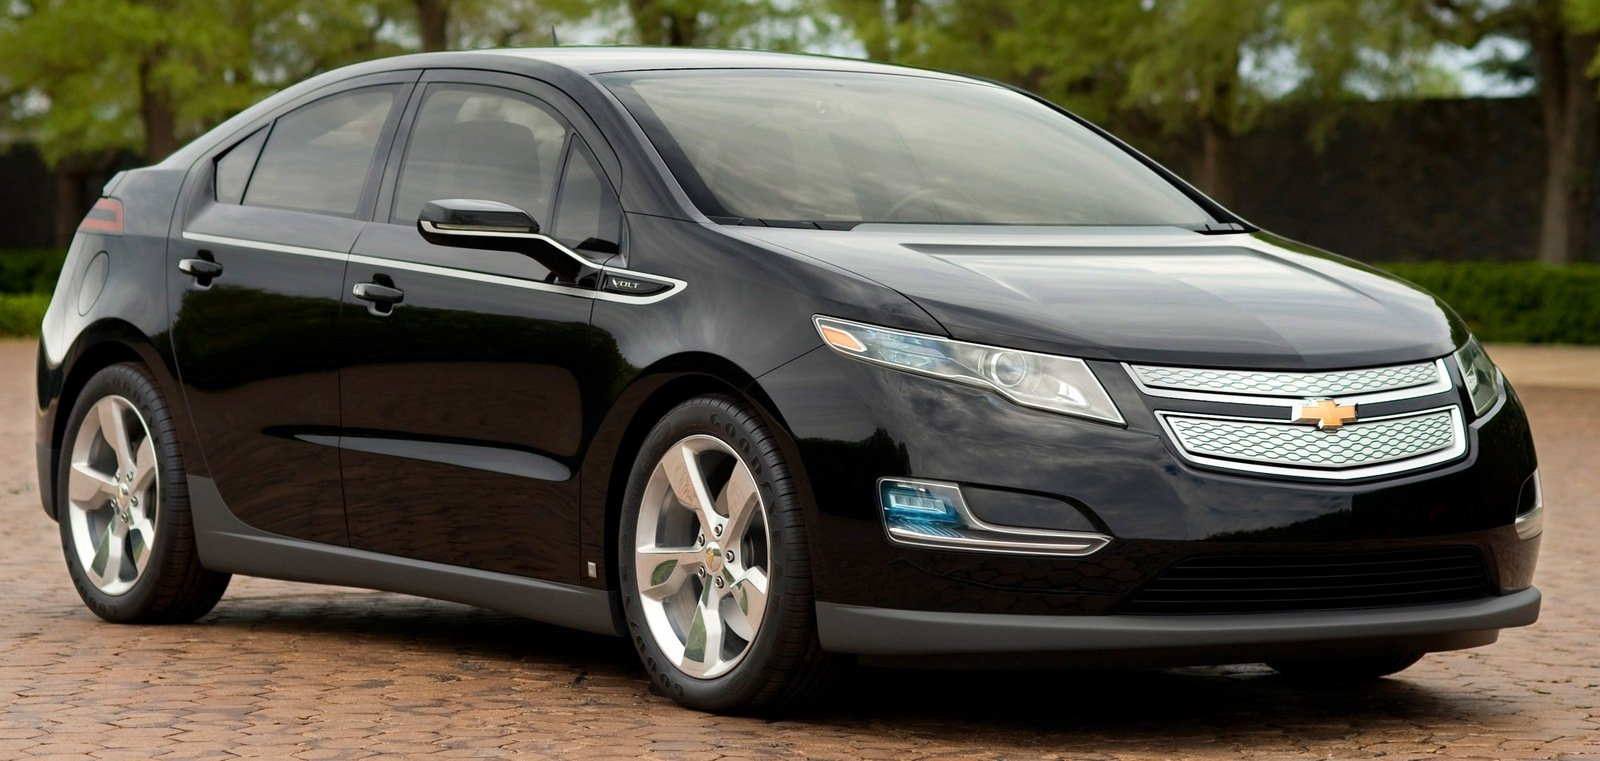 2014 chevrolet volt picture 516386 car review top speed. Black Bedroom Furniture Sets. Home Design Ideas